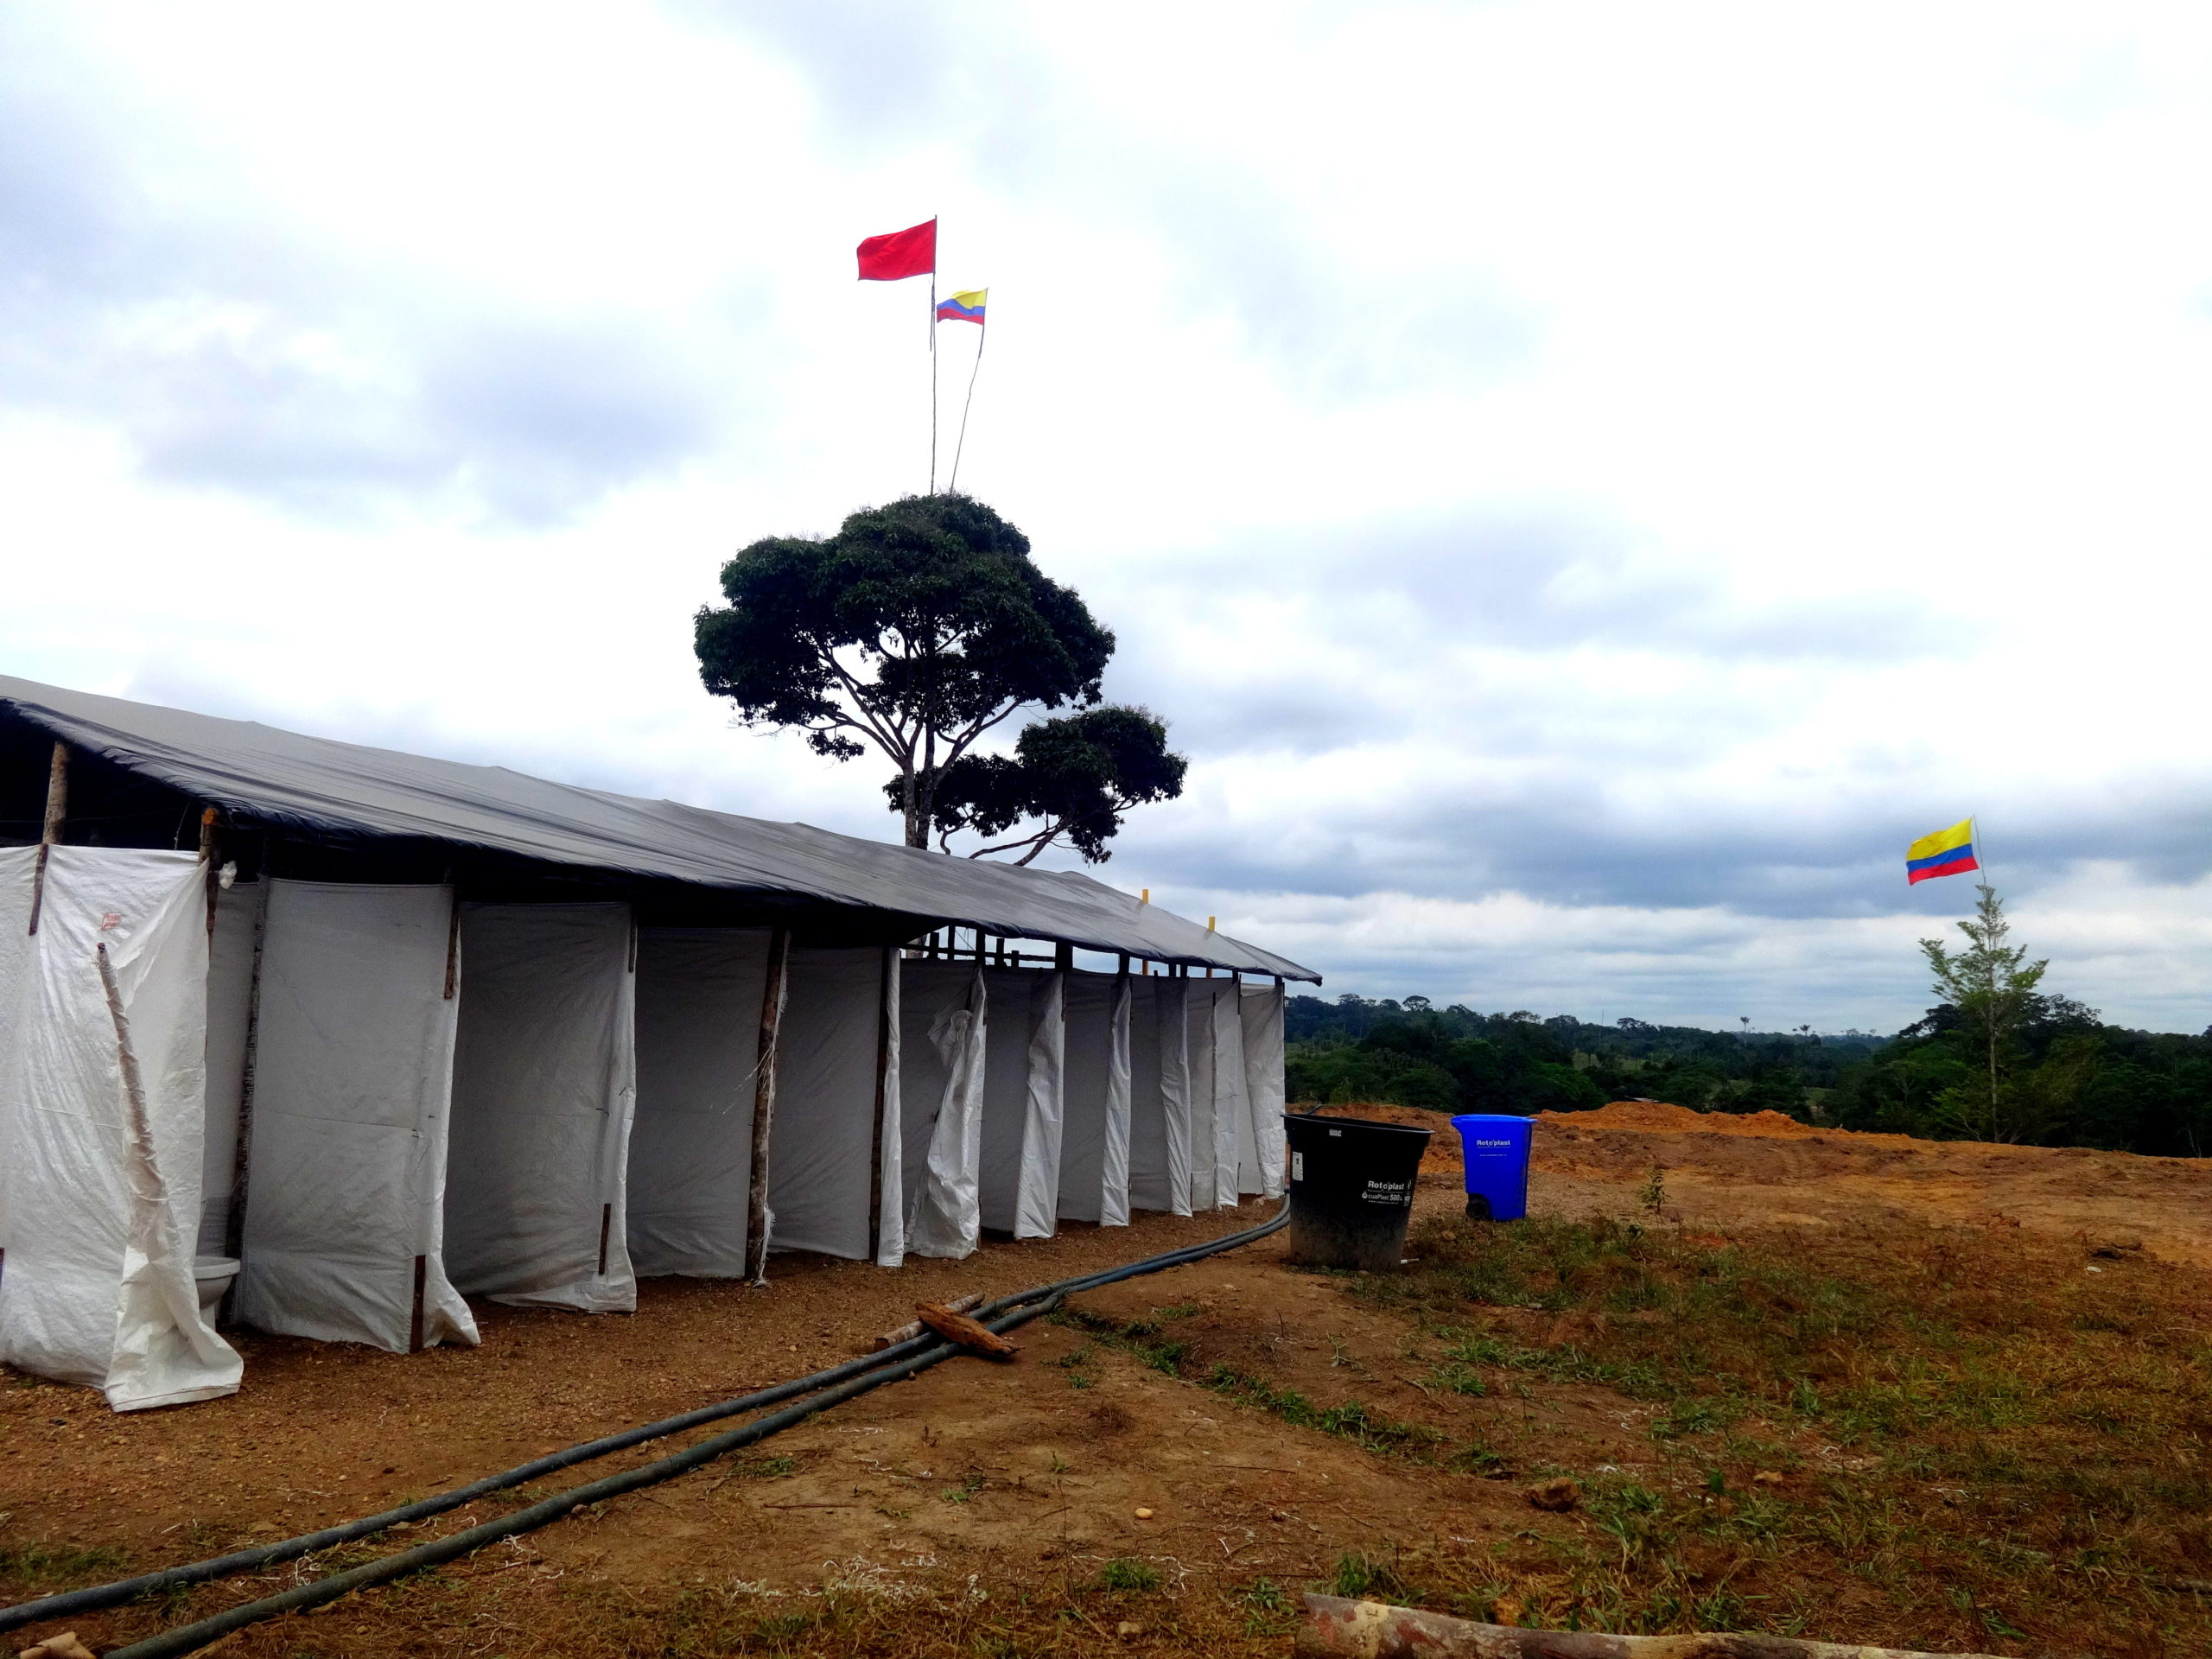 Photograph of temporary showers built in a disarmament camp in Colombia.